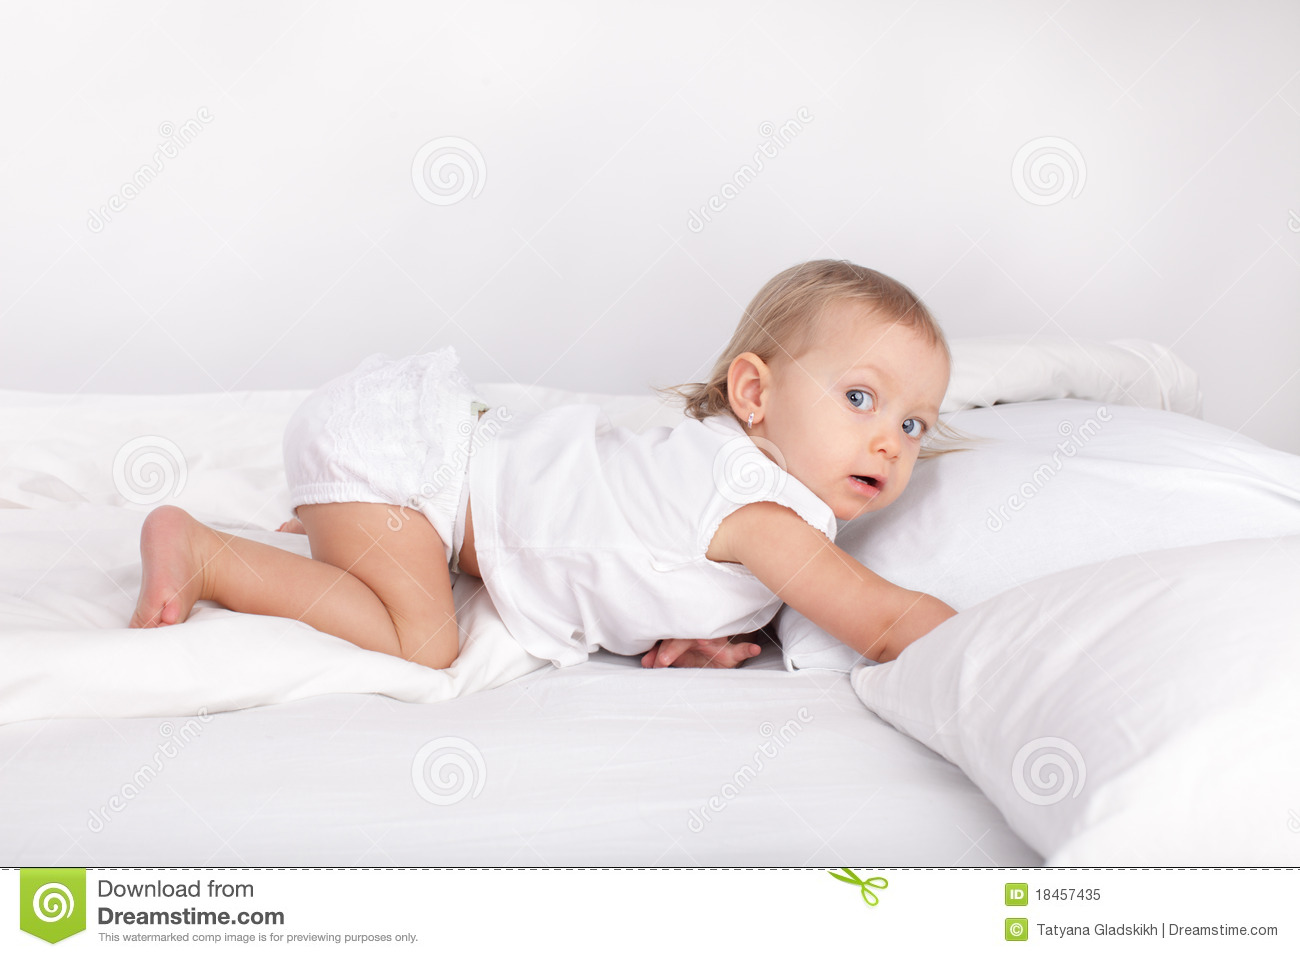 Superieur Download Baby In Bed Stock Image. Image Of Little, Face, Beautiful    18457435